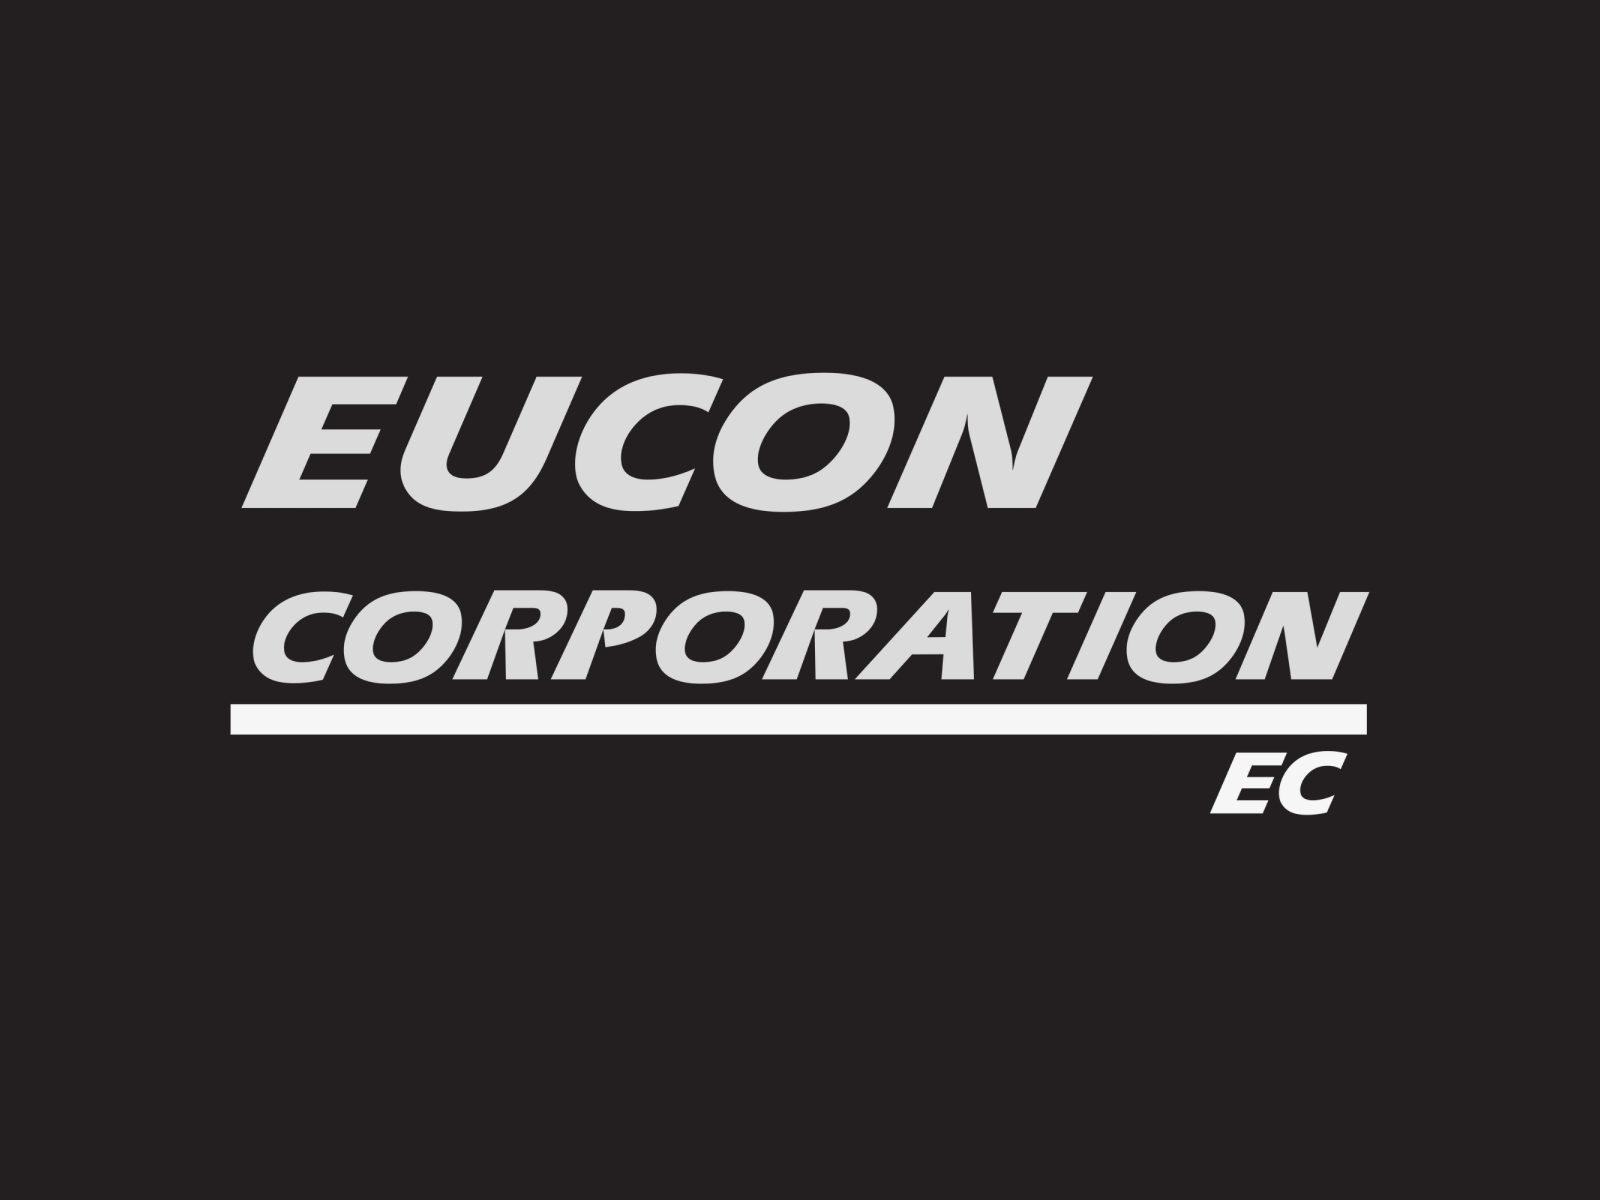 Eucon Corporation